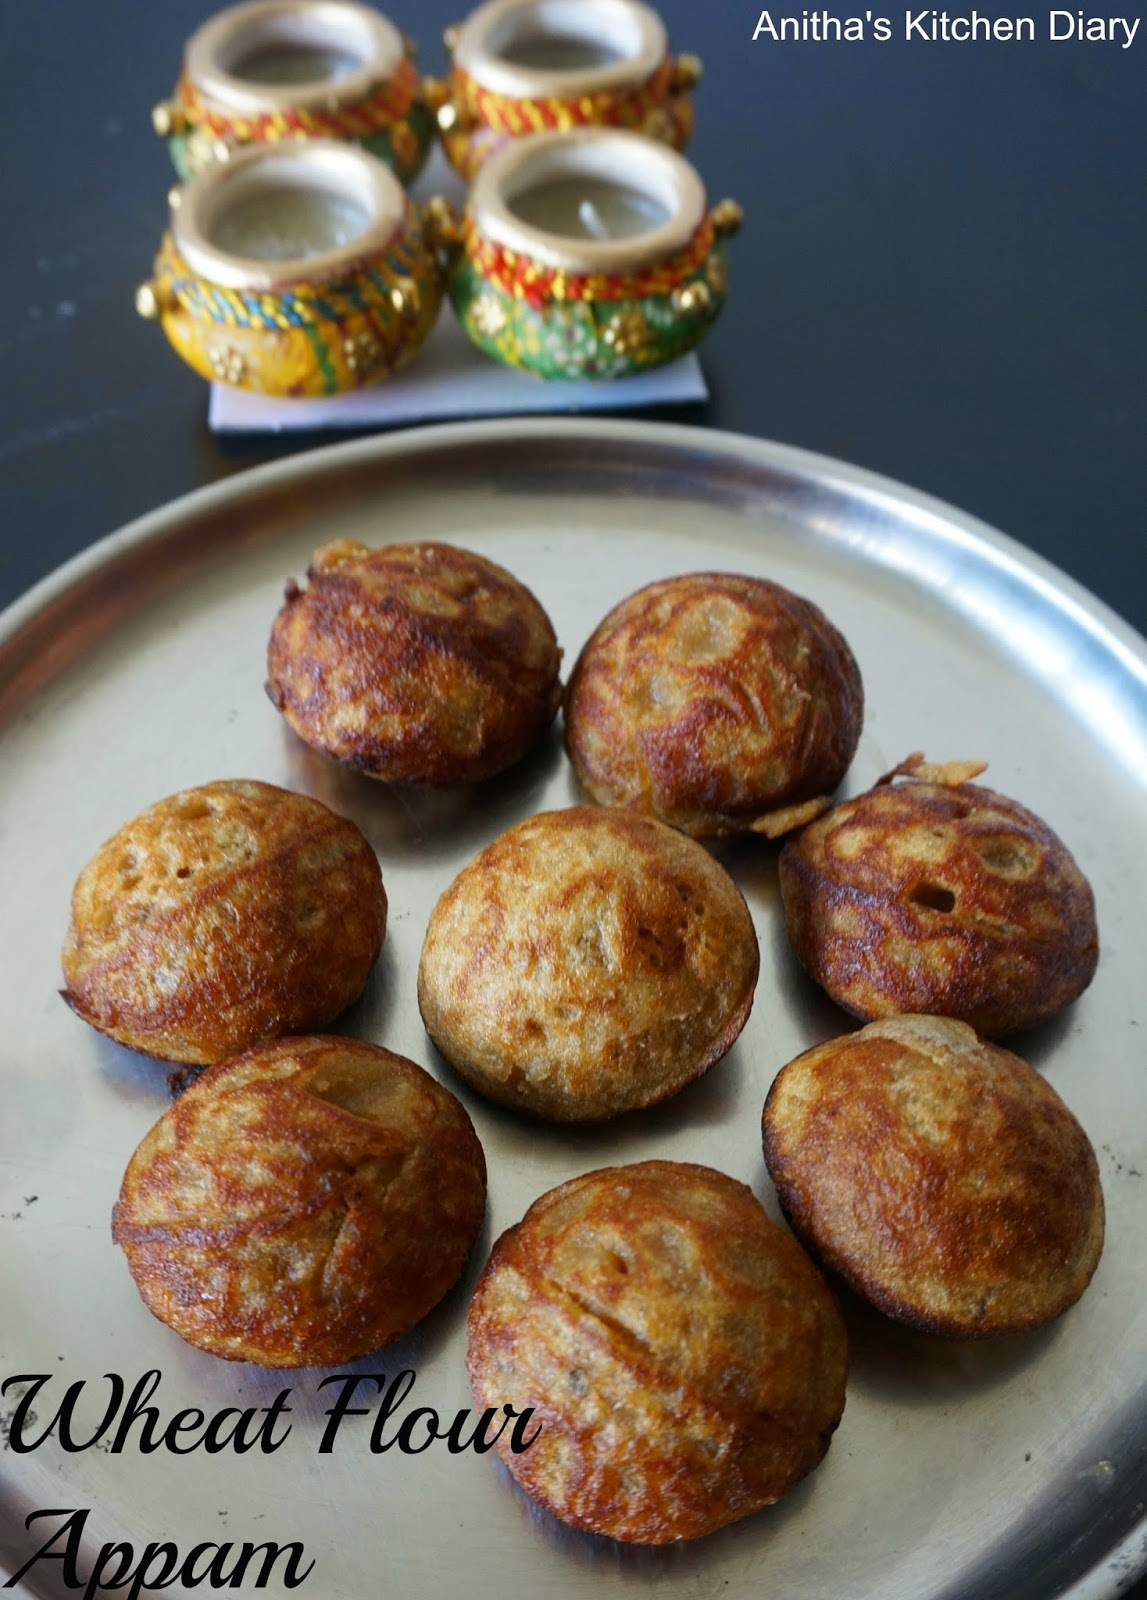 jaggery appam rice flour